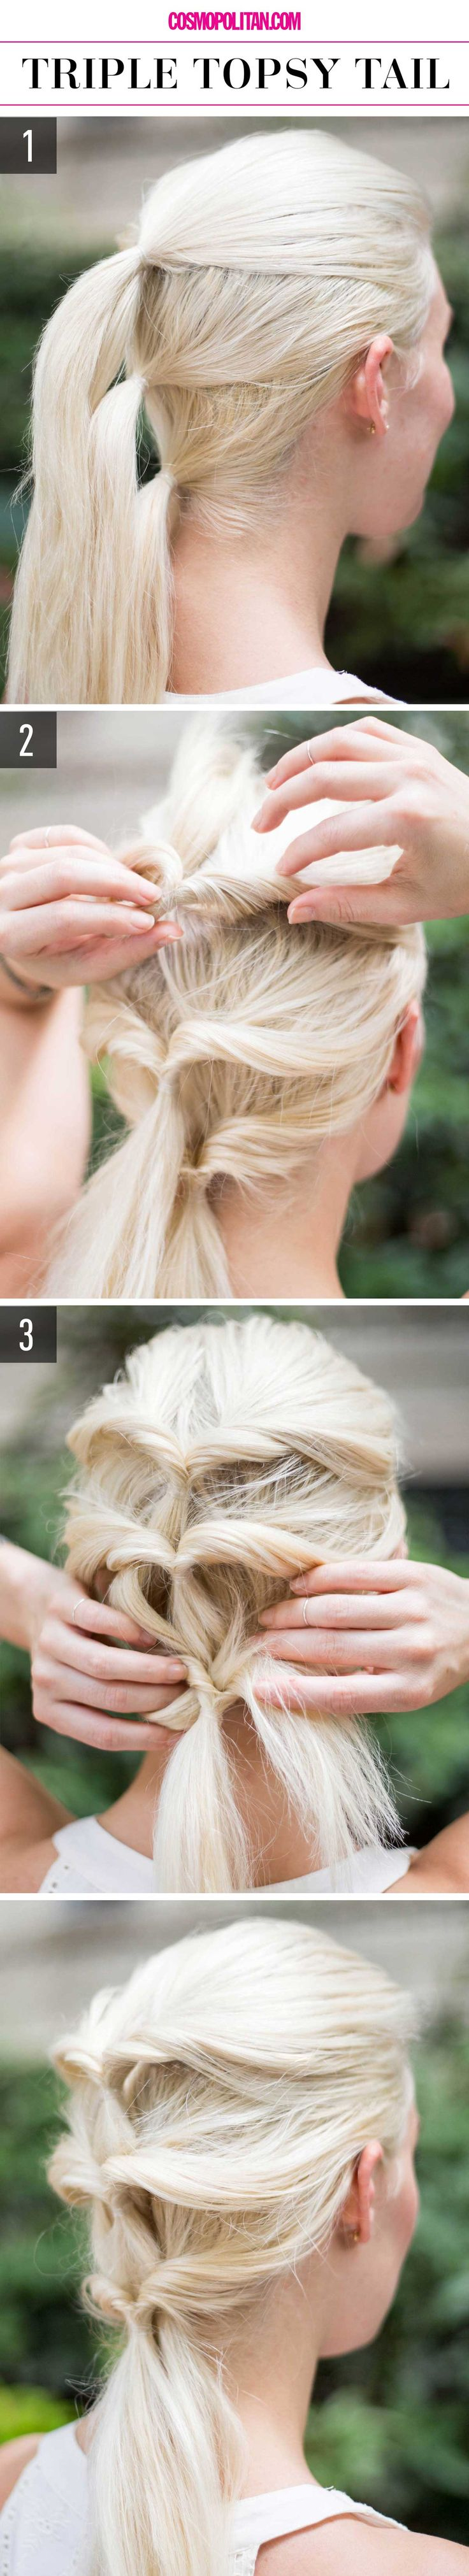 15 Super-Easy Hairstyles For When You're Feeling Particularly Lazy- Triple Topsy Tail- This may look a little too exotic at first but once you try out this trend once you will never stop doing it. Get more hair tricks for those days you just can't get out of bed at redbookmag.com.